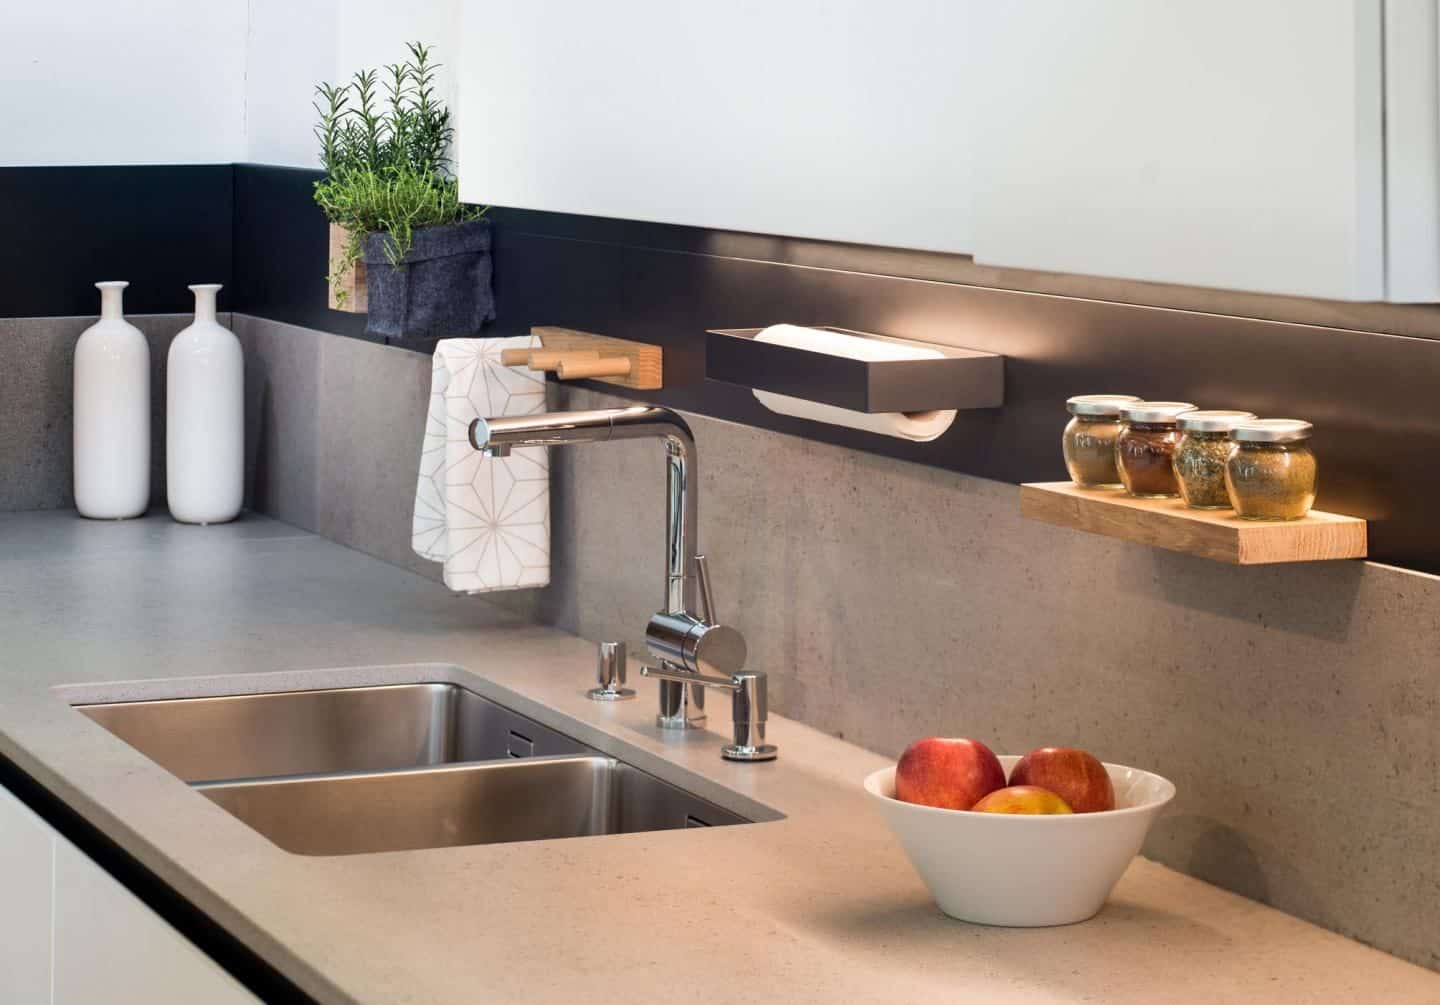 Steelline_magnet is a Magnetic Storage System by 3s design installed in a kitchen. Photo by Blaz Jamsek